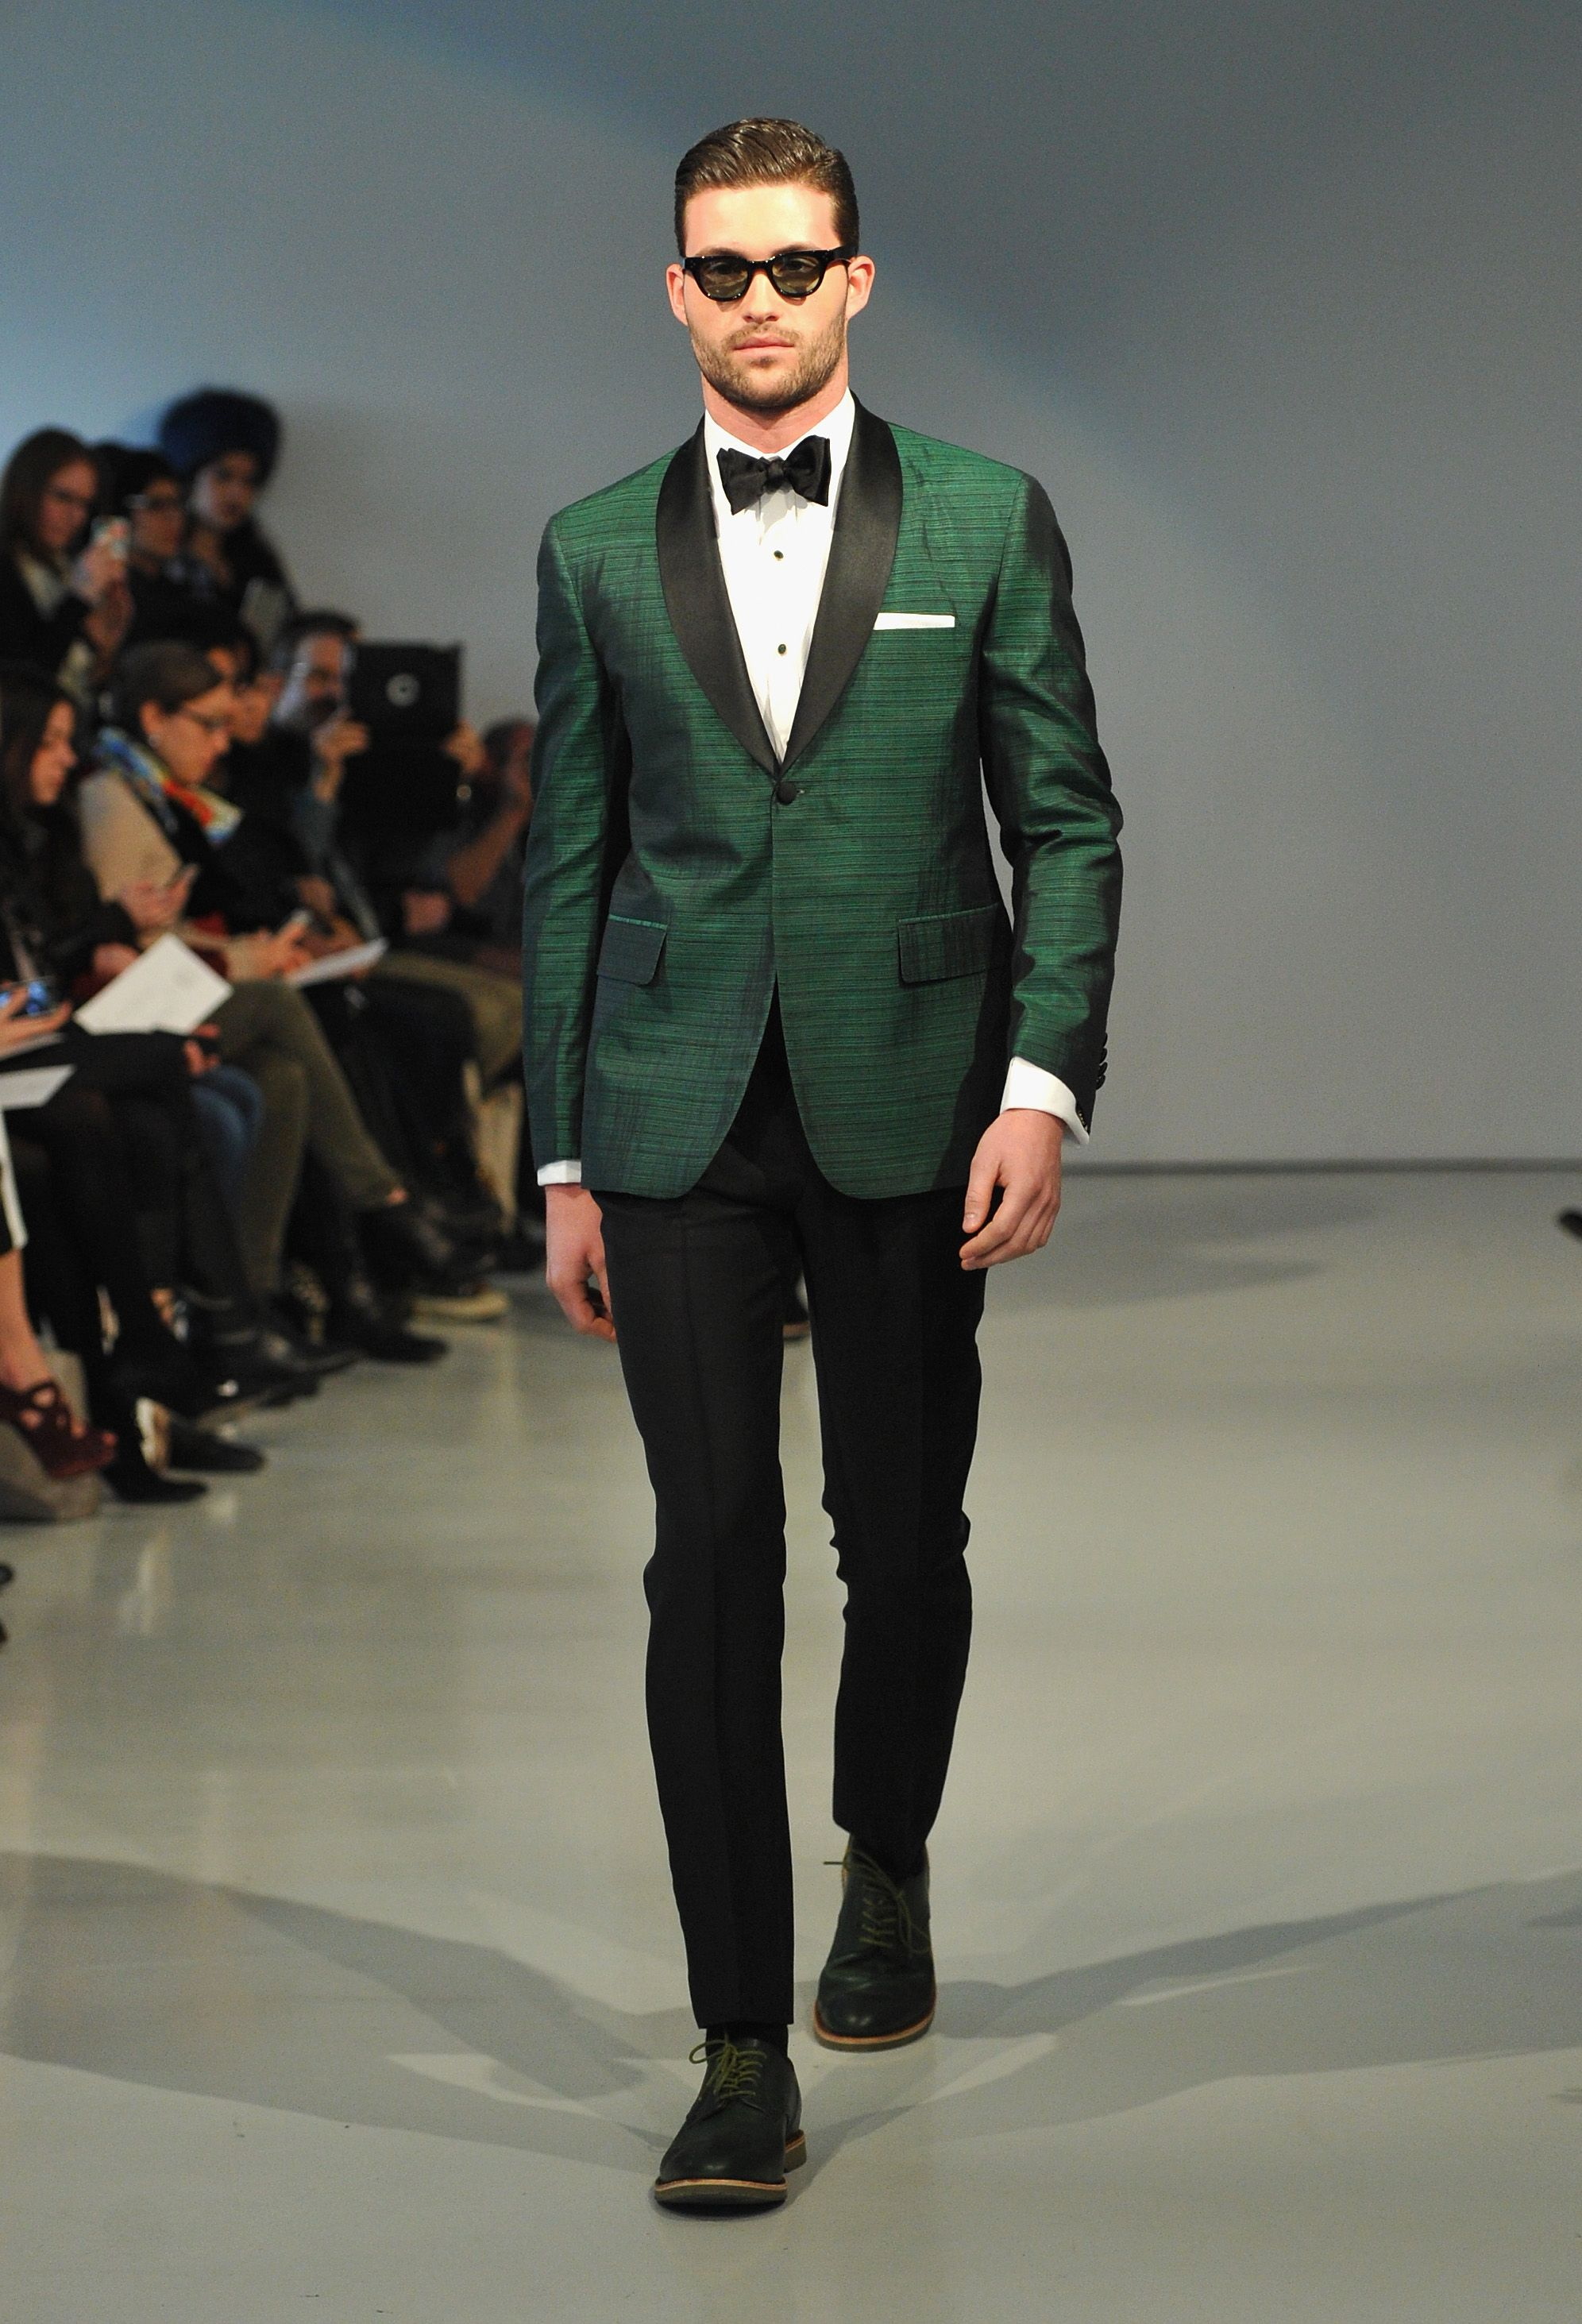 a model walks the runway in a green tuxedo jacket at the david hart  a model walks the runway in a green tuxedo jacket at the david hart fall 2013 fashion show during mercedes benz fashion week fall 2013,